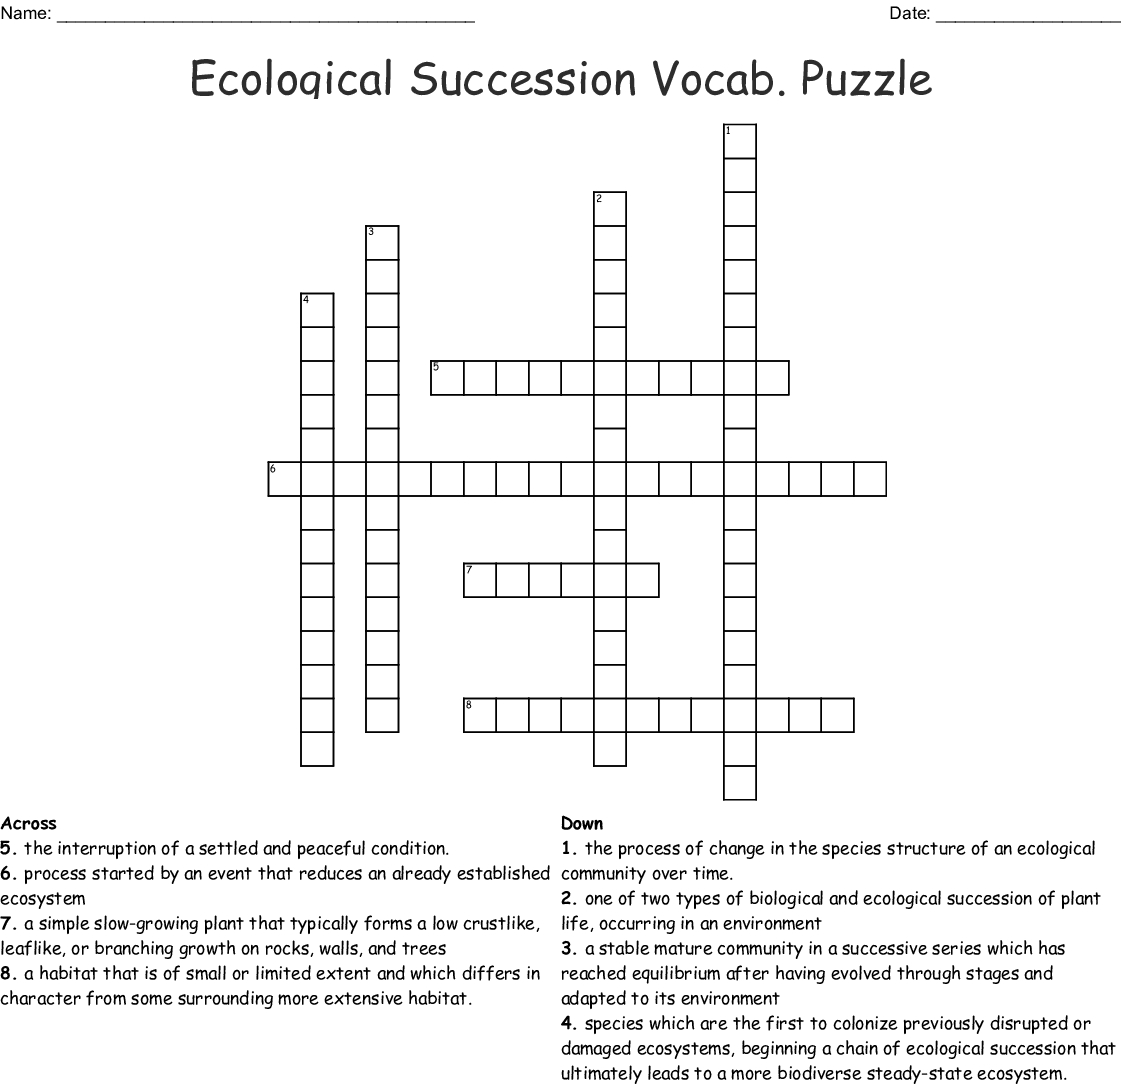 Ecological Succession Crossword Word